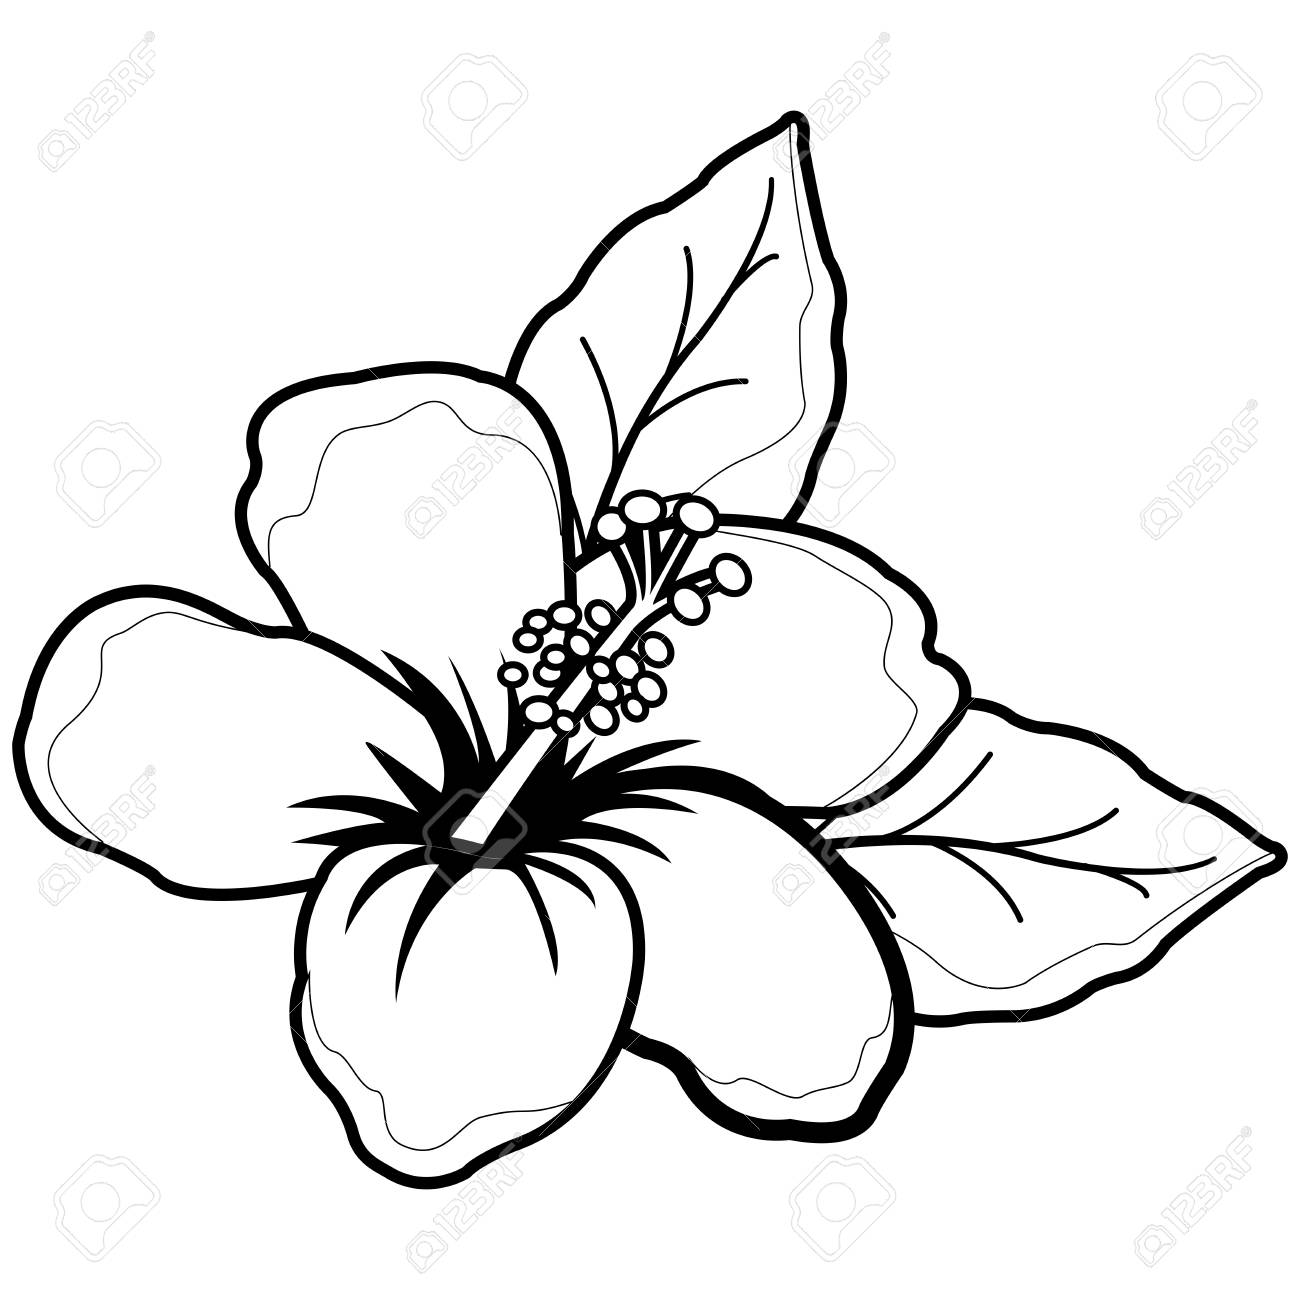 Hawaiian hibiscus flower. Black and white coloring book page.